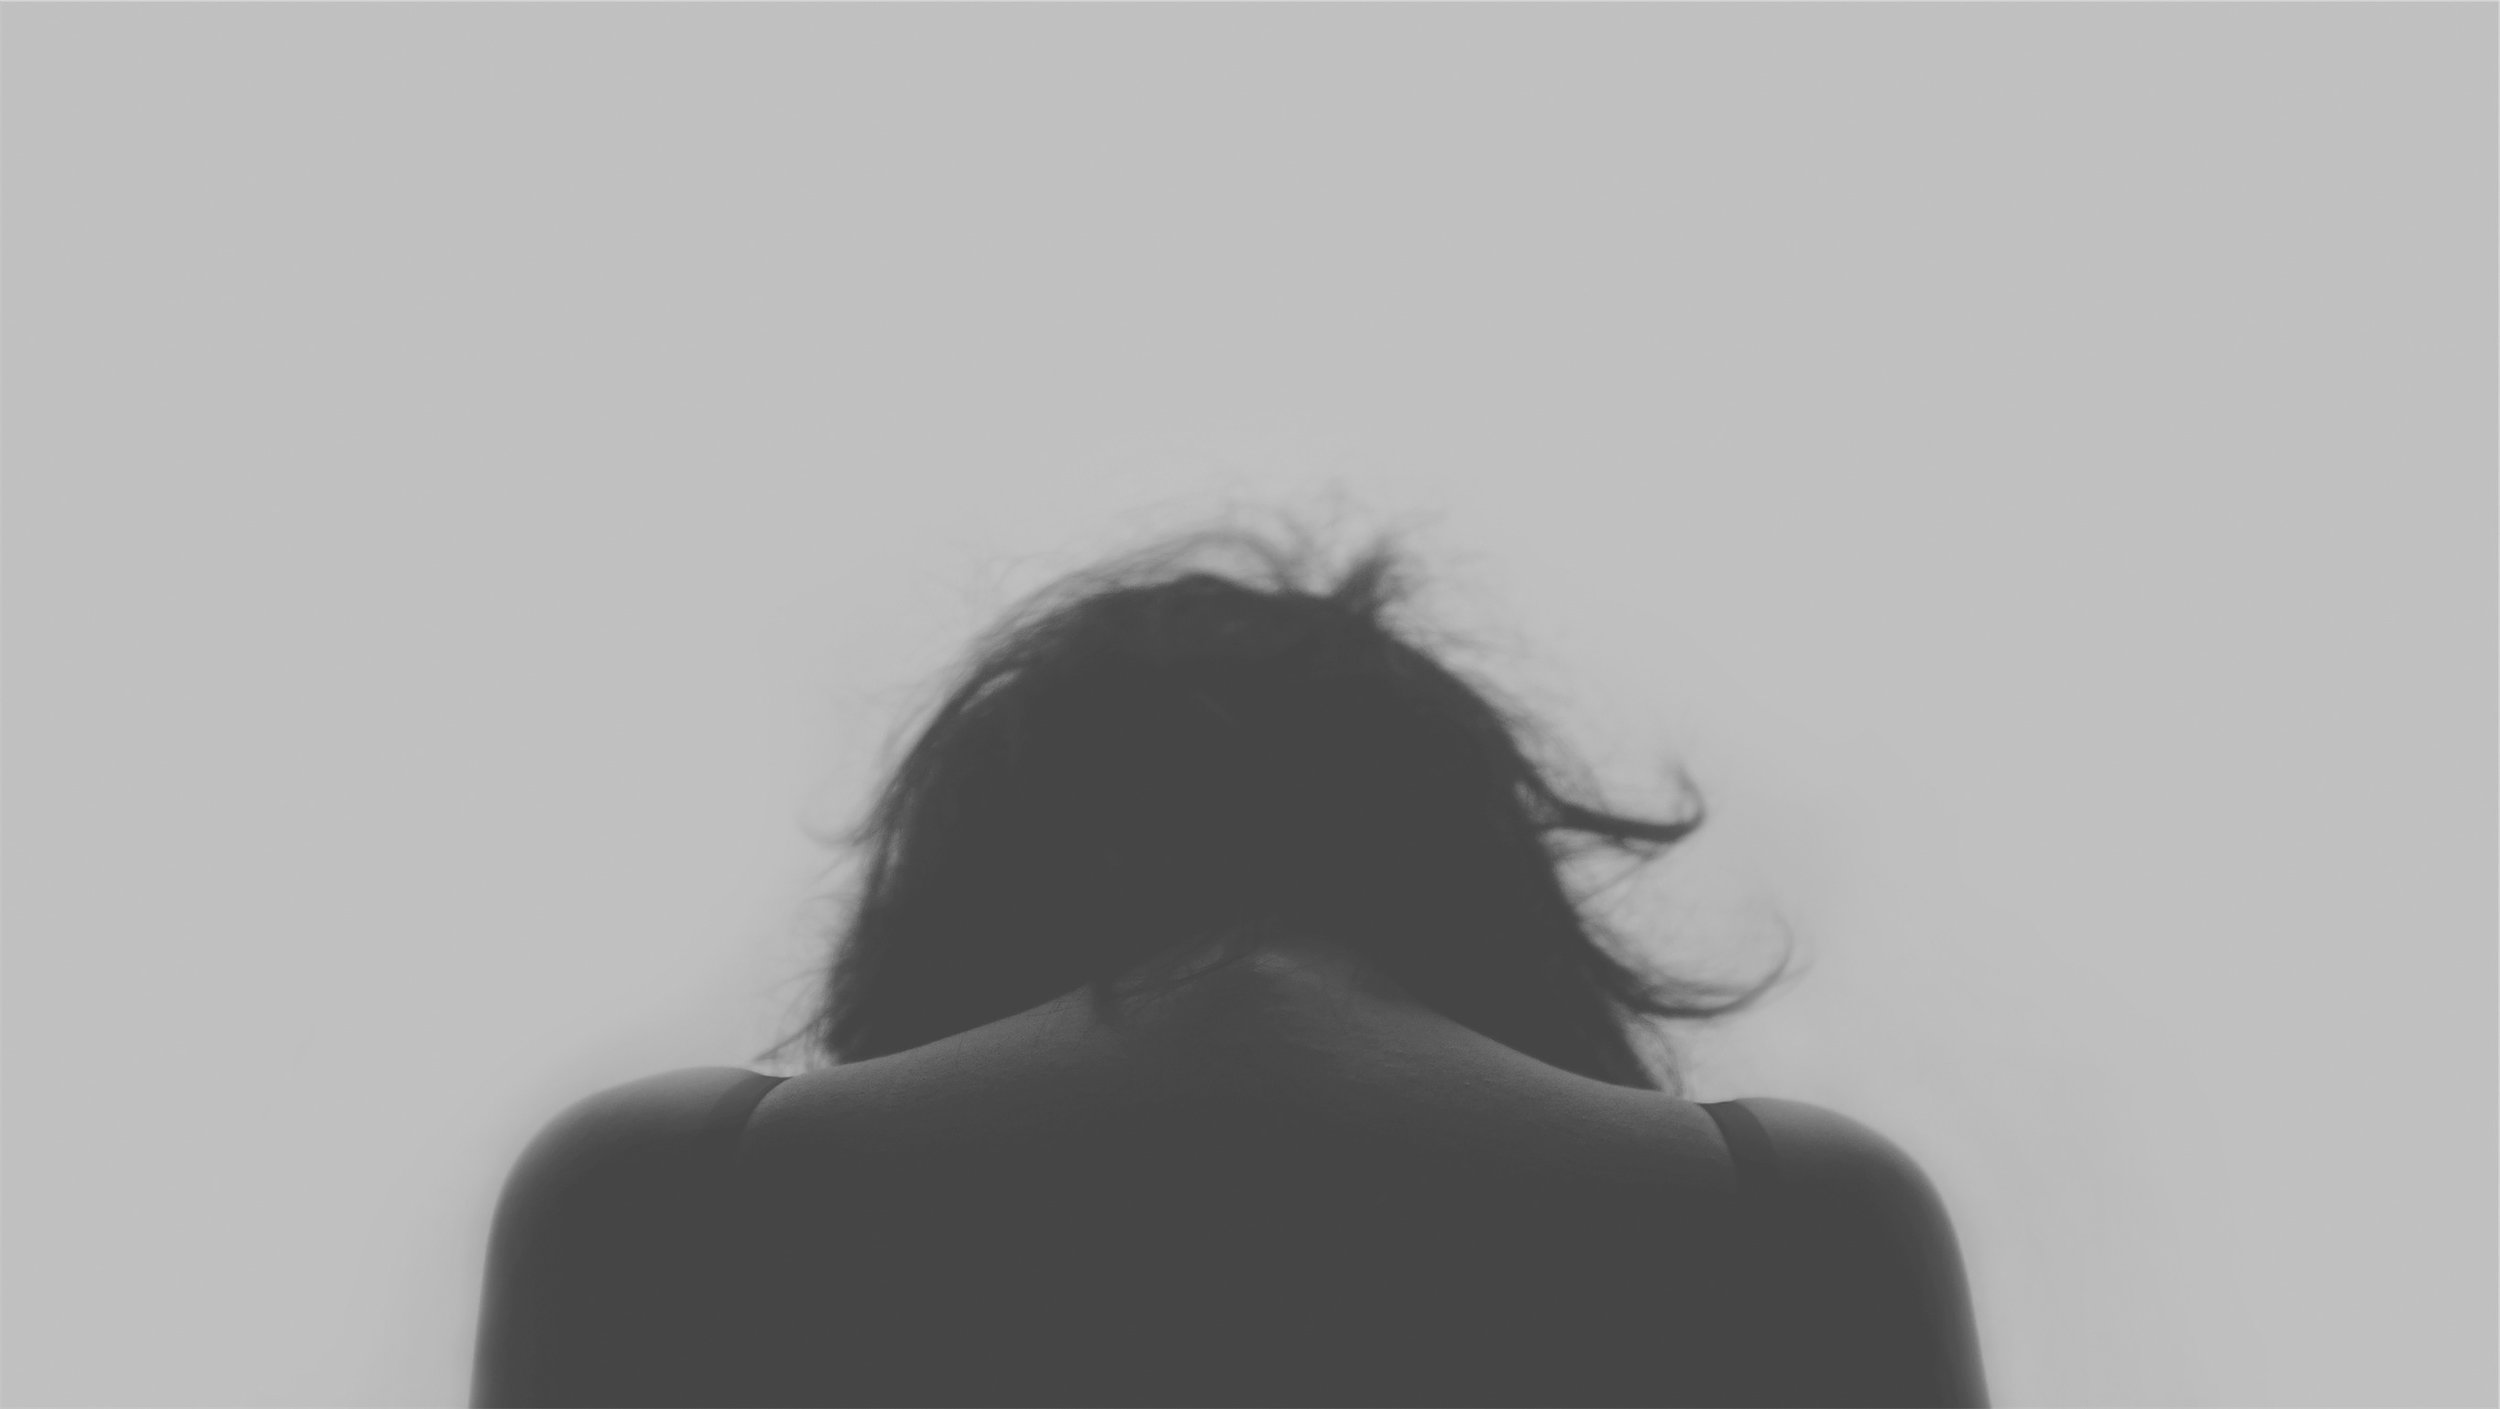 Canva - Moody image of woman looking down.jpg